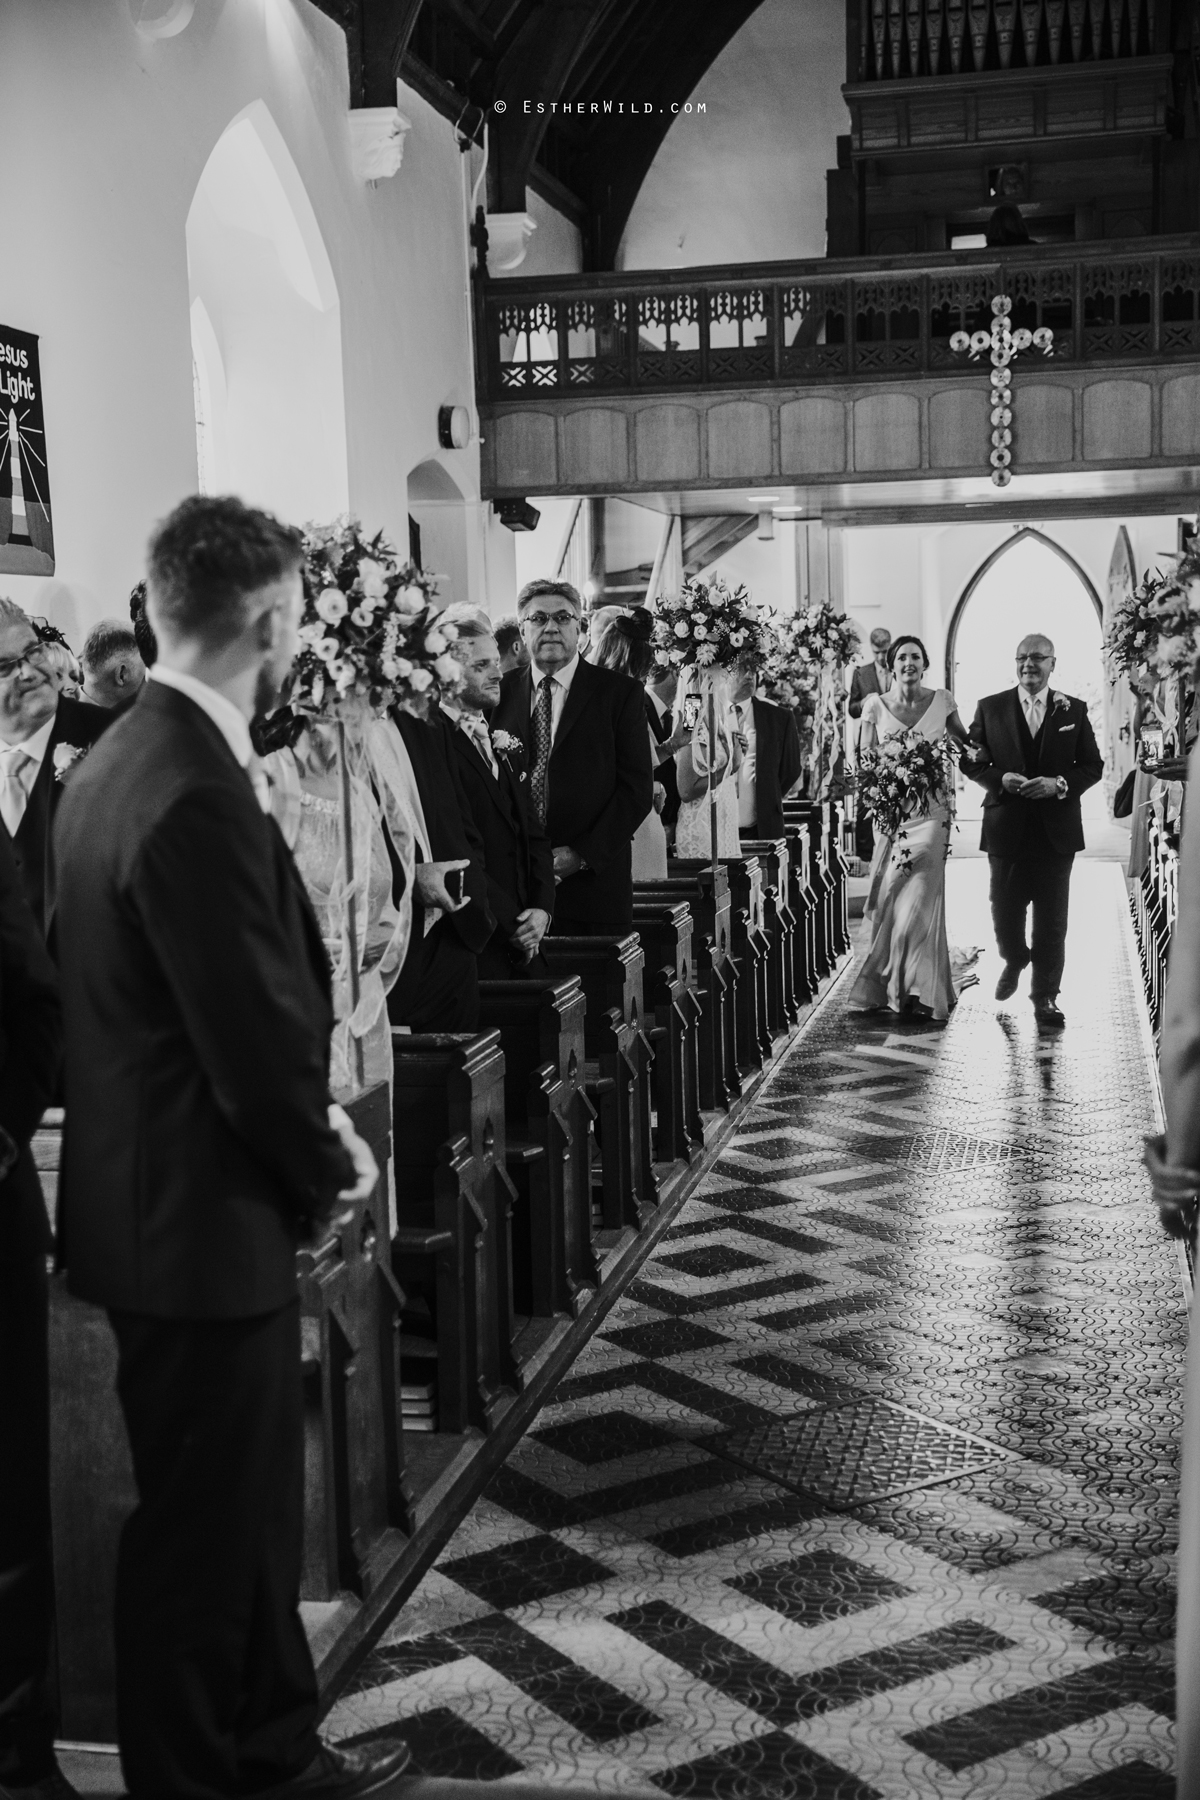 Wootton_Wedding_Copyright_Esther_Wild_Photographer_IMG_0846-2.jpg